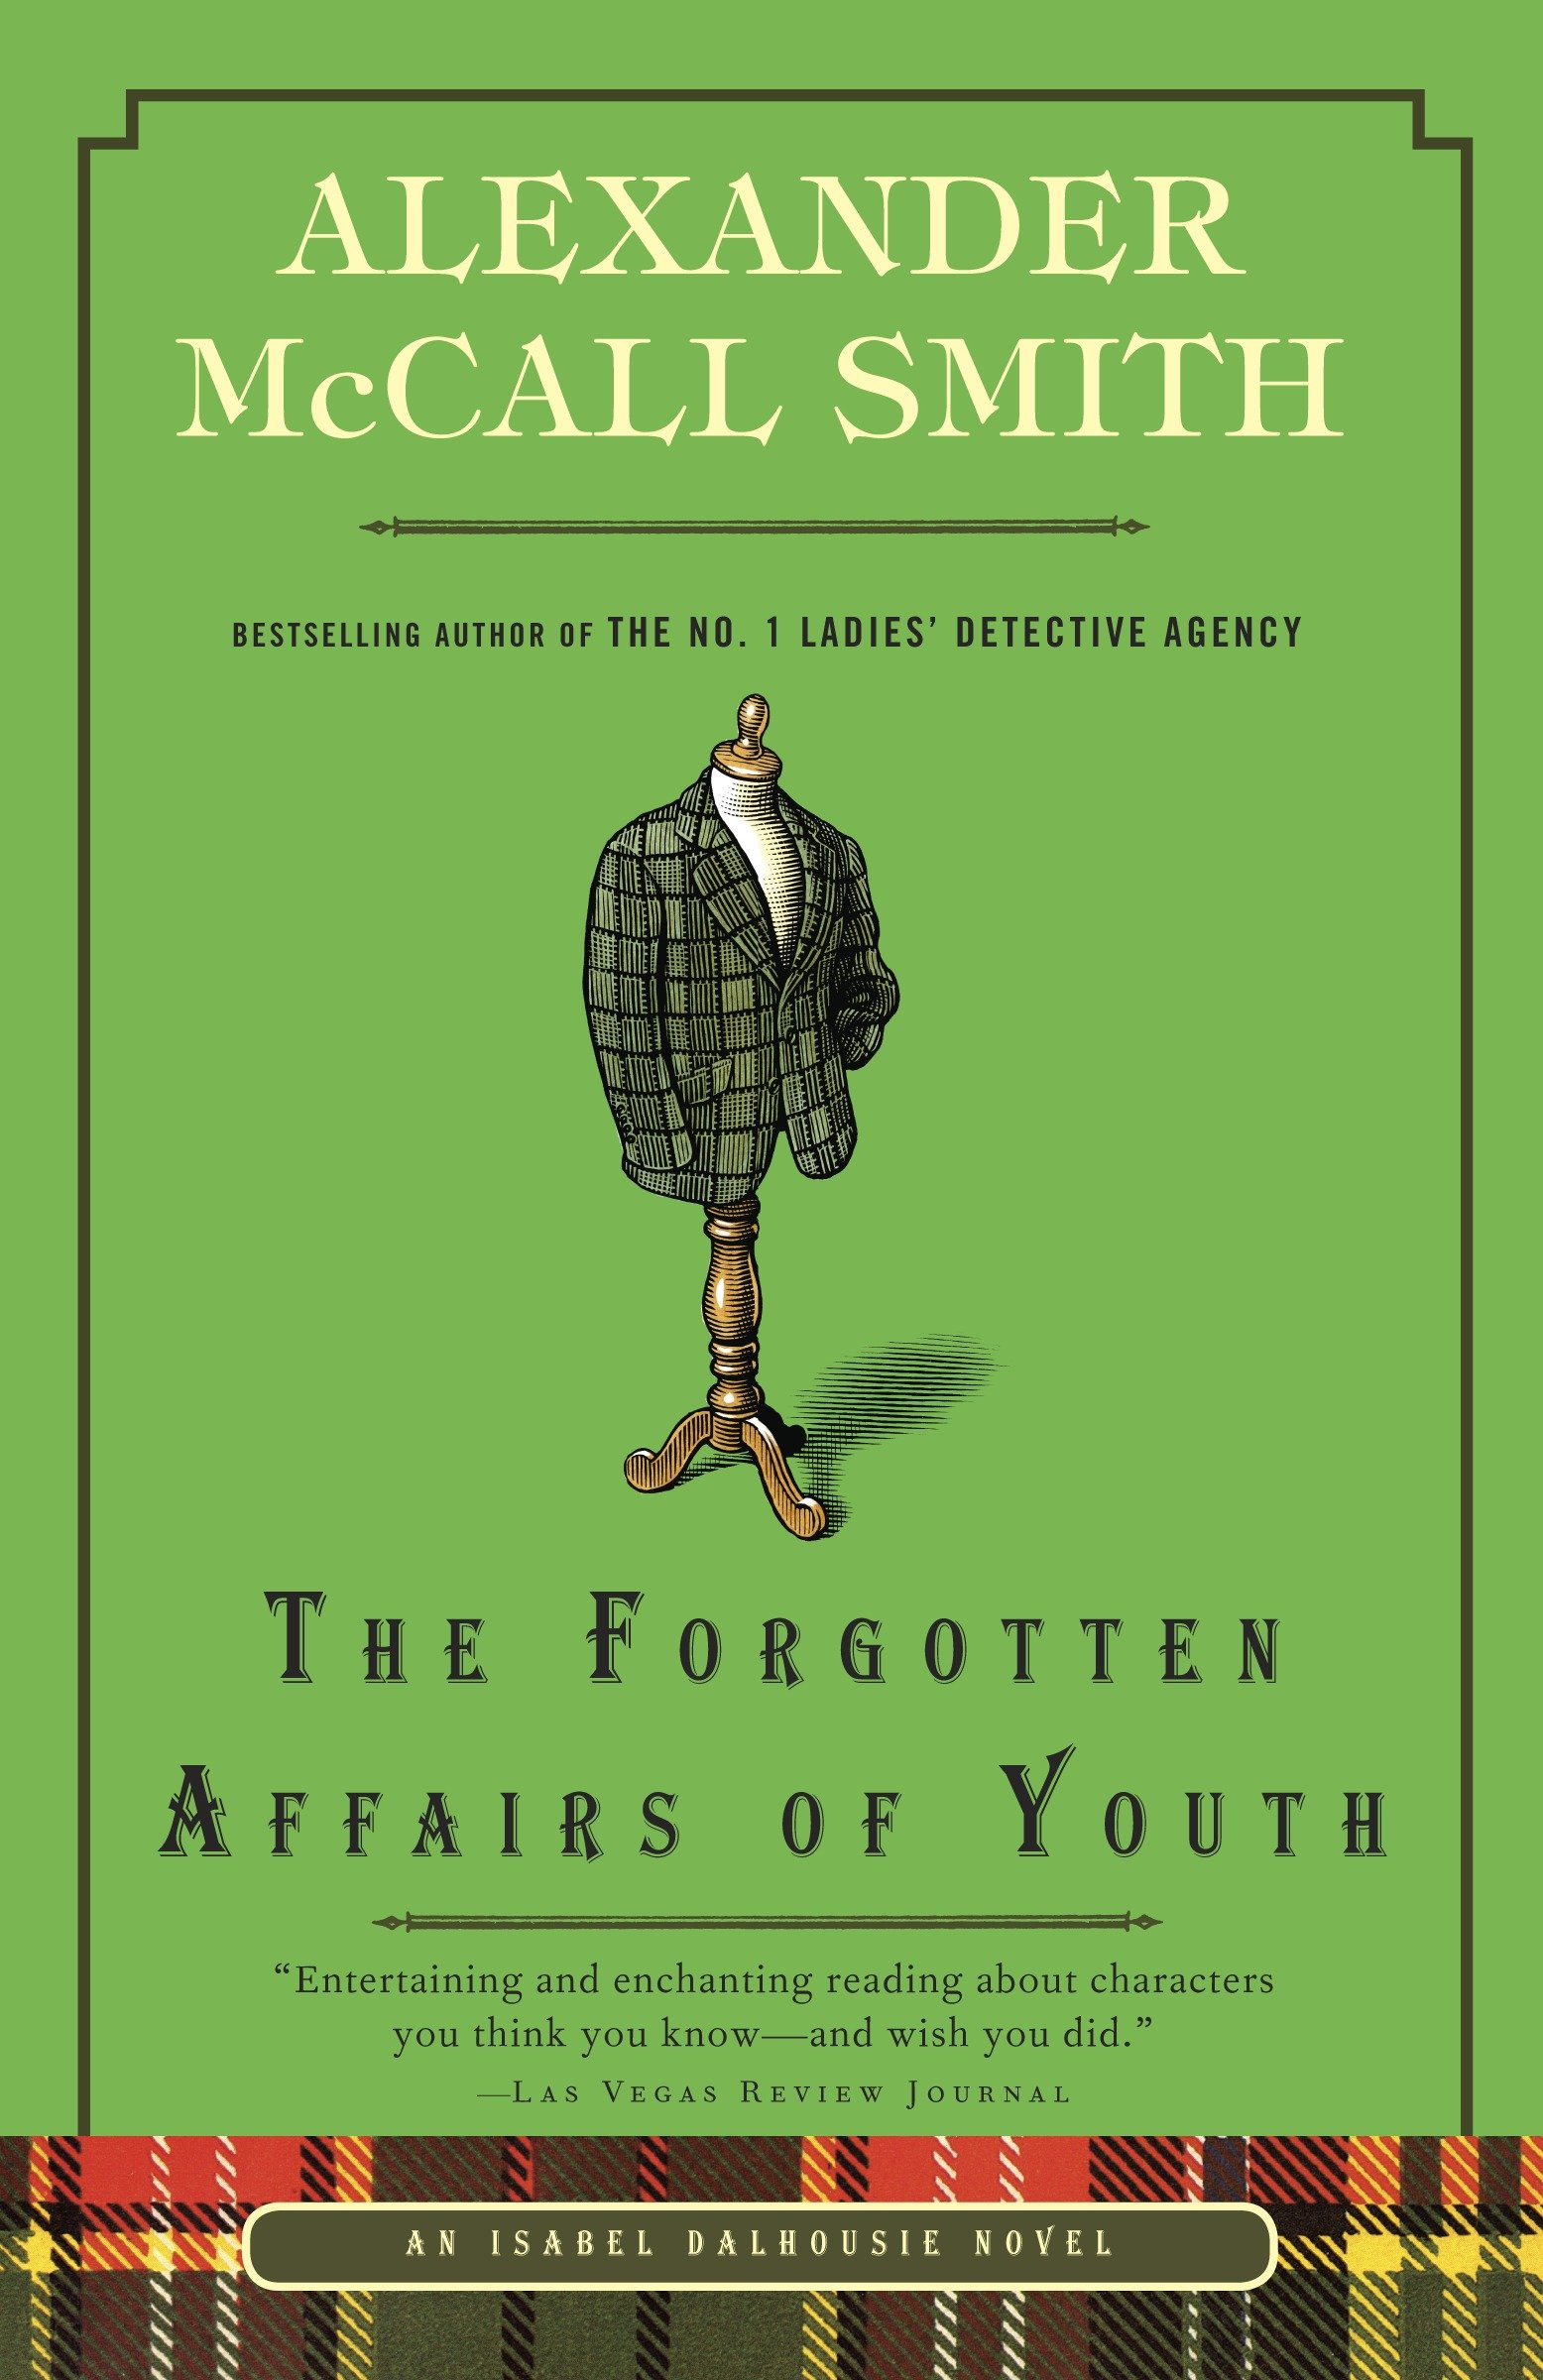 The forgotten affairs of youth cover image